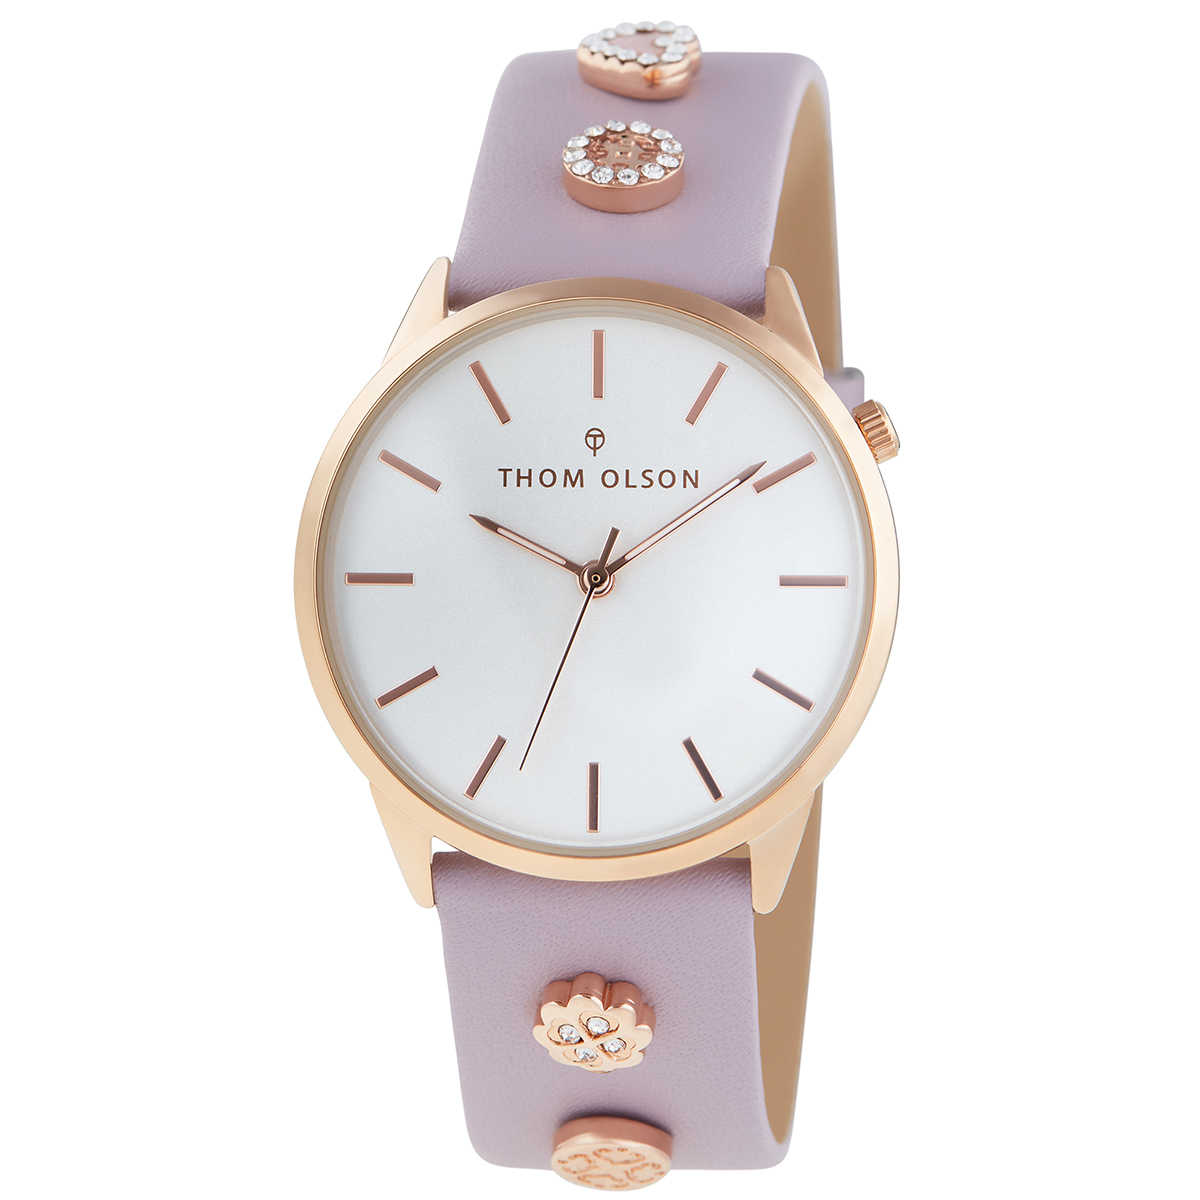 Ceas THOM OLSON - Gypset Lilac Lovers CBTO020 Lilac/Rose Gold